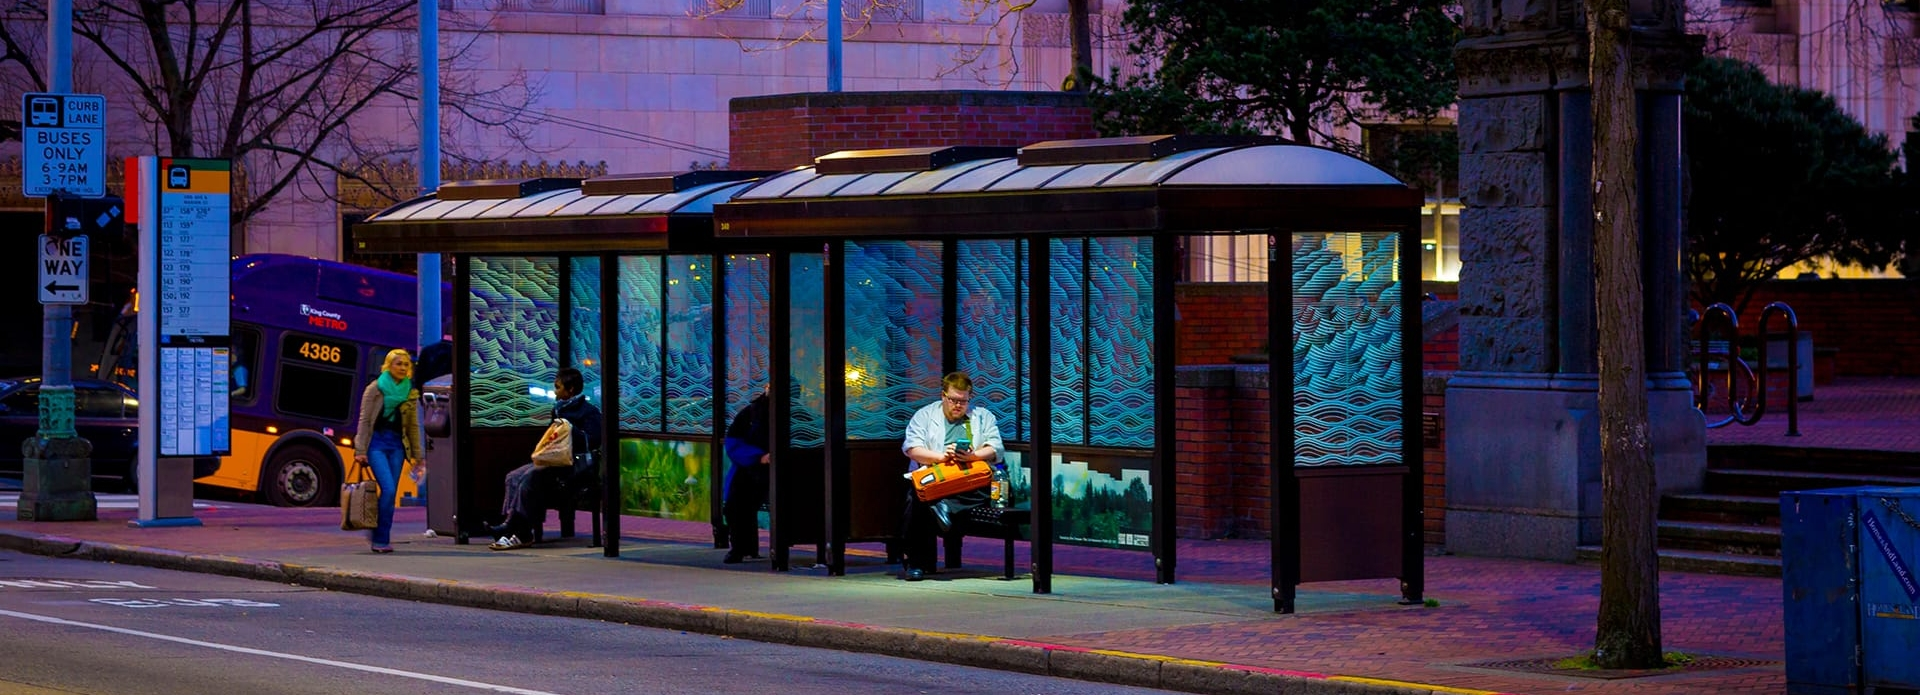 Bus stop with solar-powered lighting